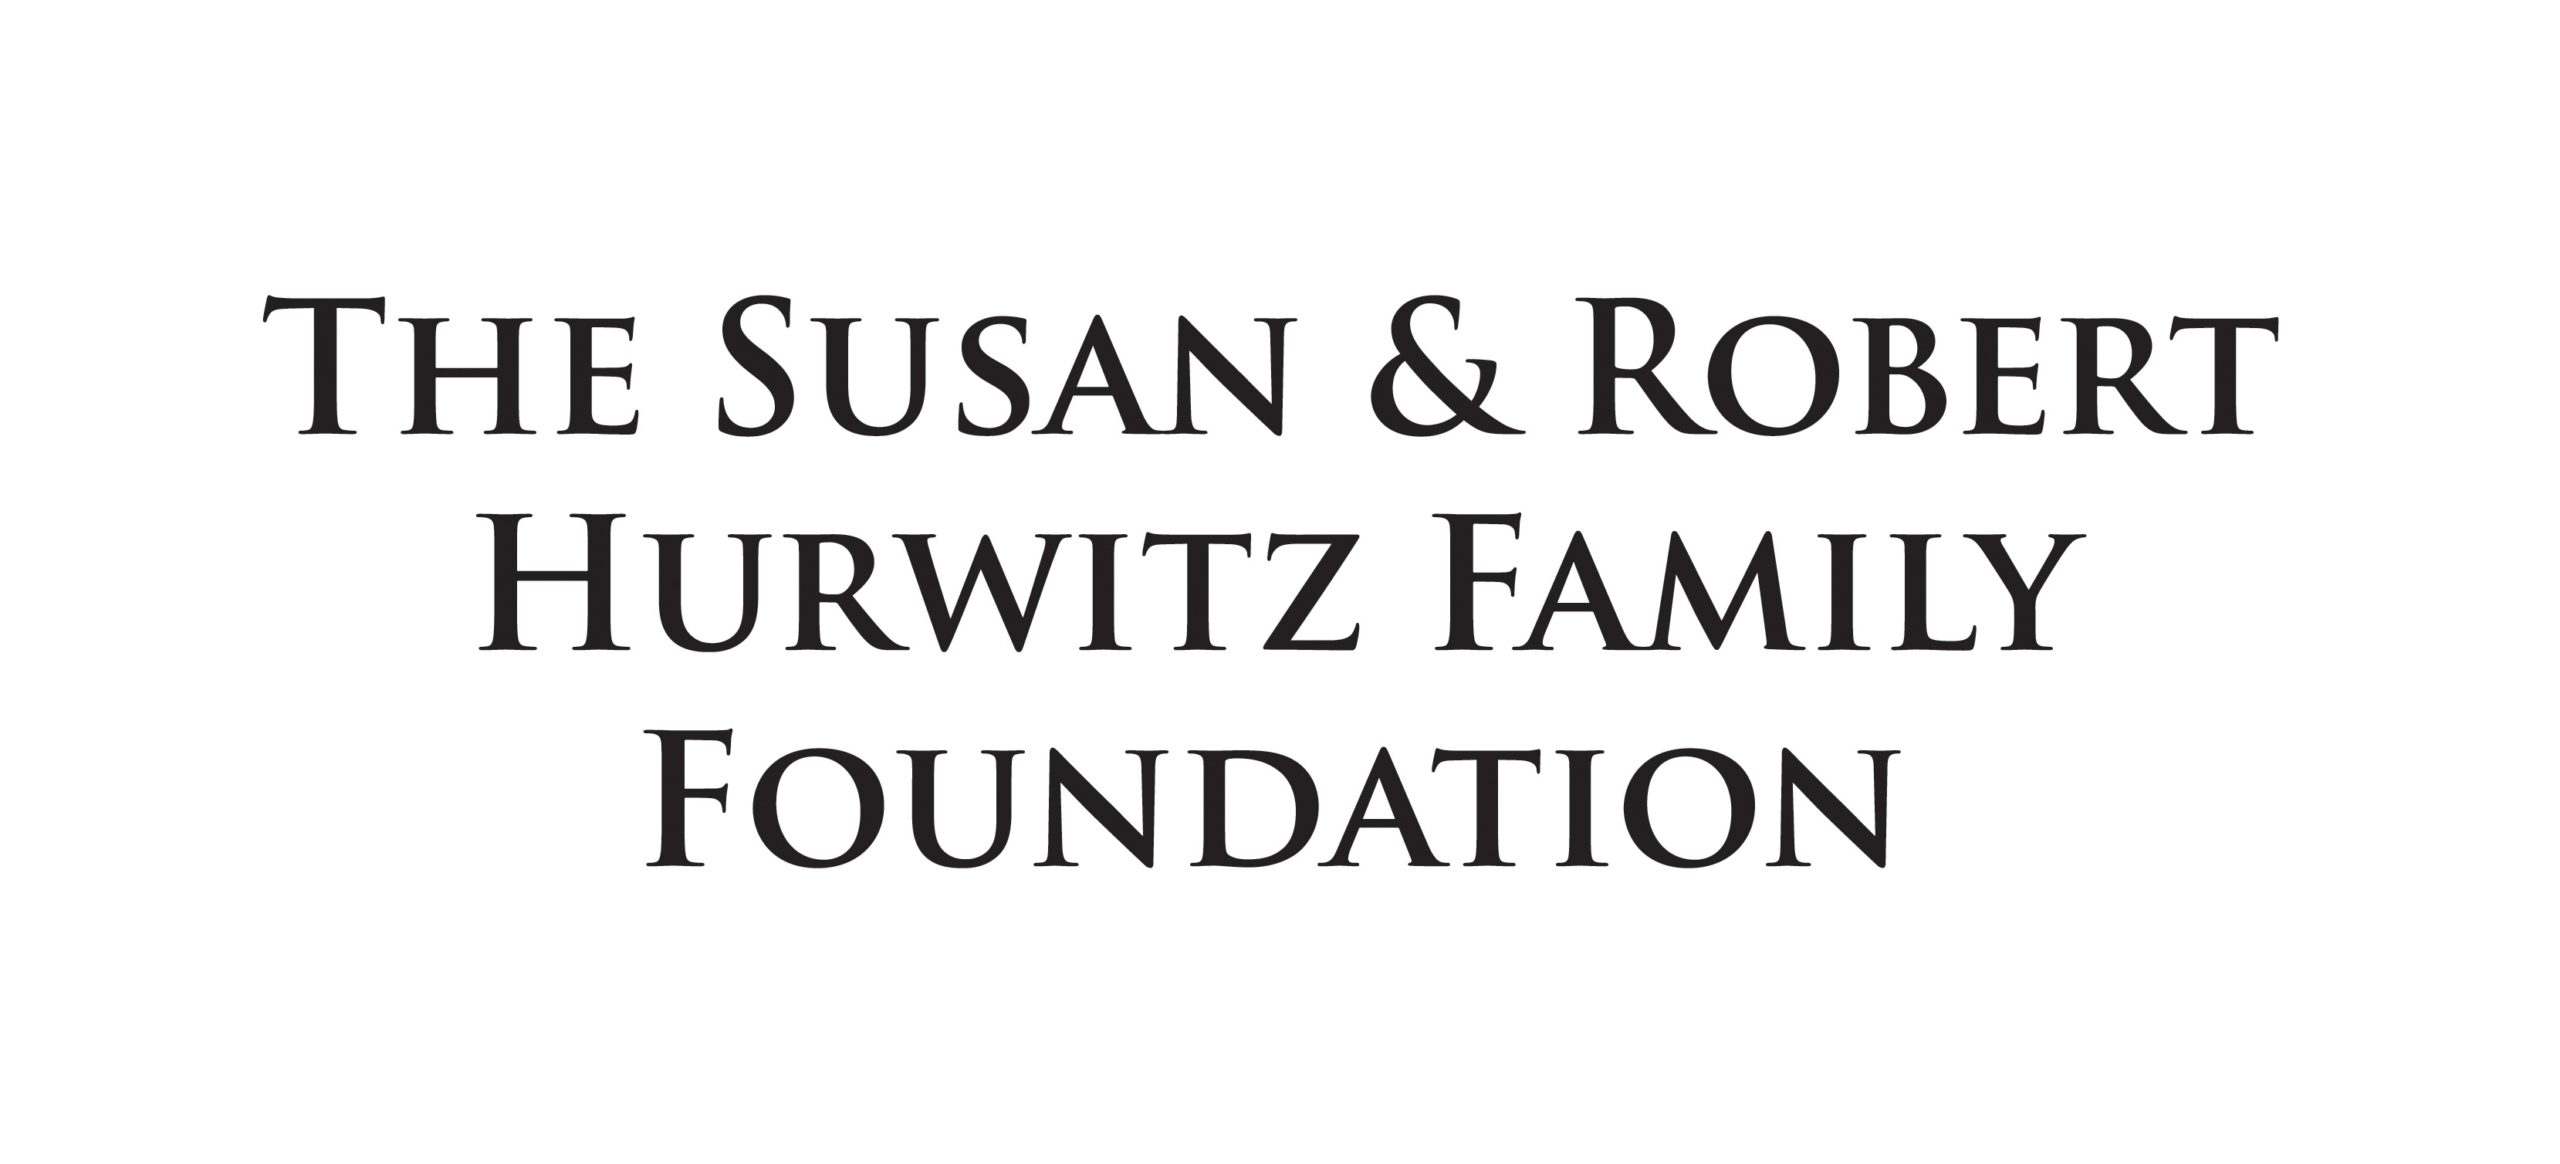 Hurwitz Foundation